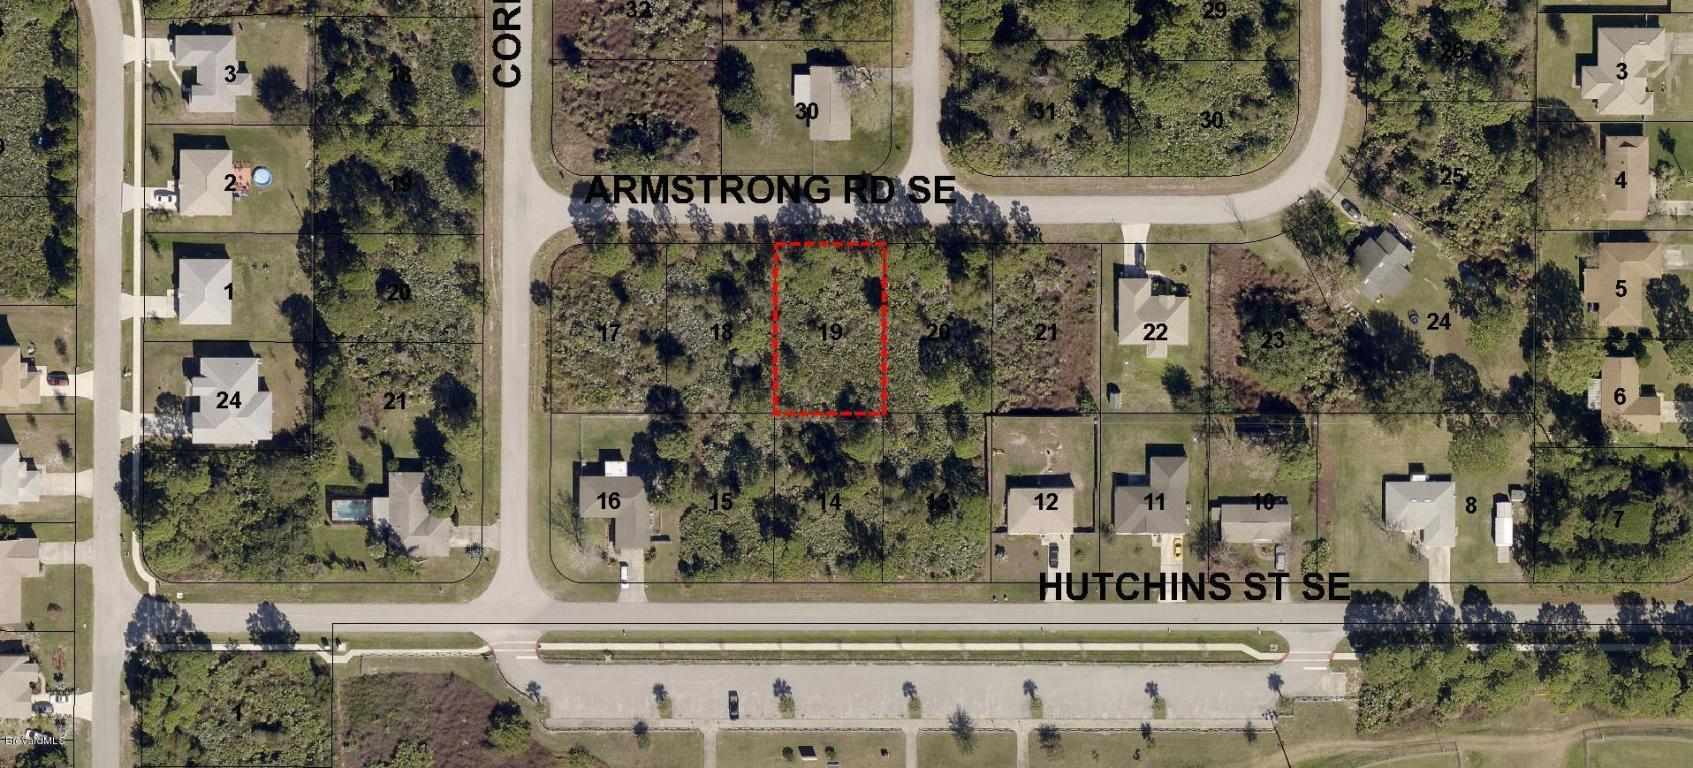 912 Armstrong Rd SE, Palm Bay, FL 32909 - Estimate and Home Details ...